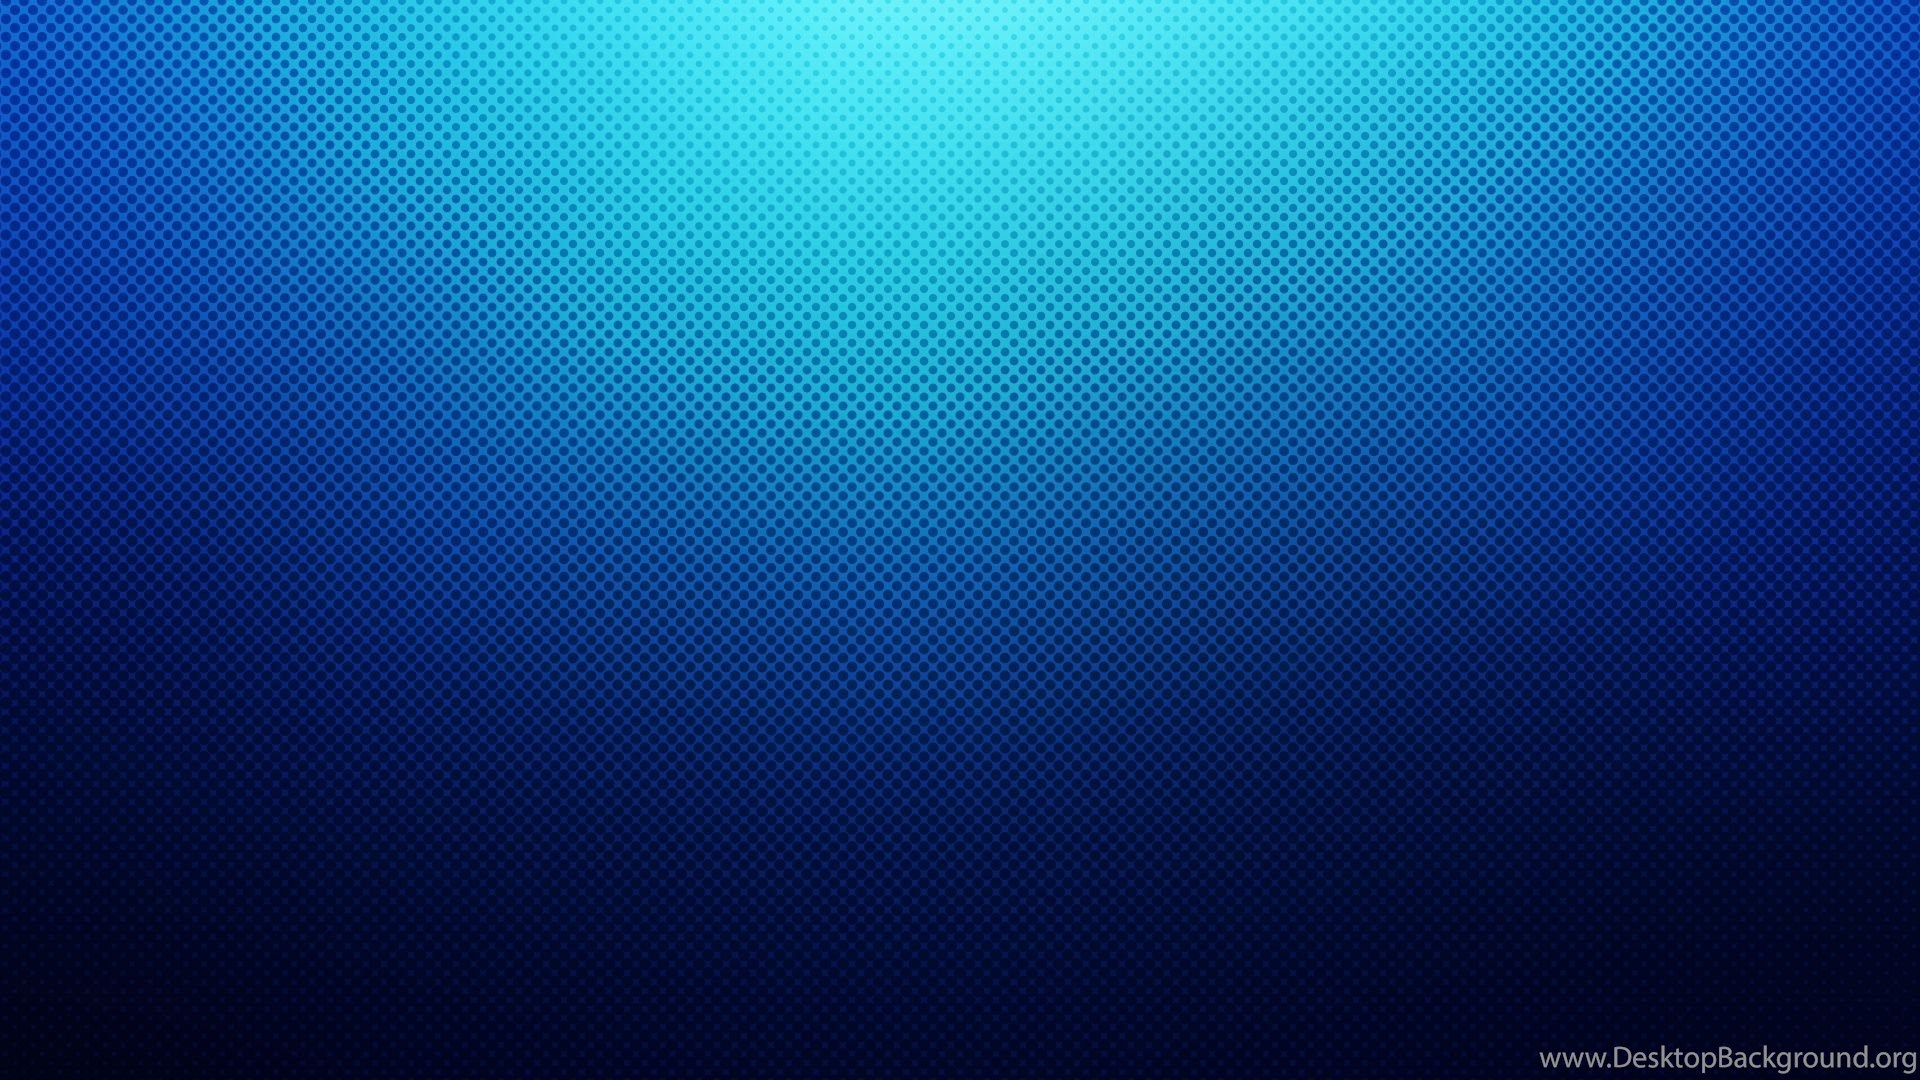 Download Wallpapers 1920x1080 Texture, Blue, Background, Shadow ...